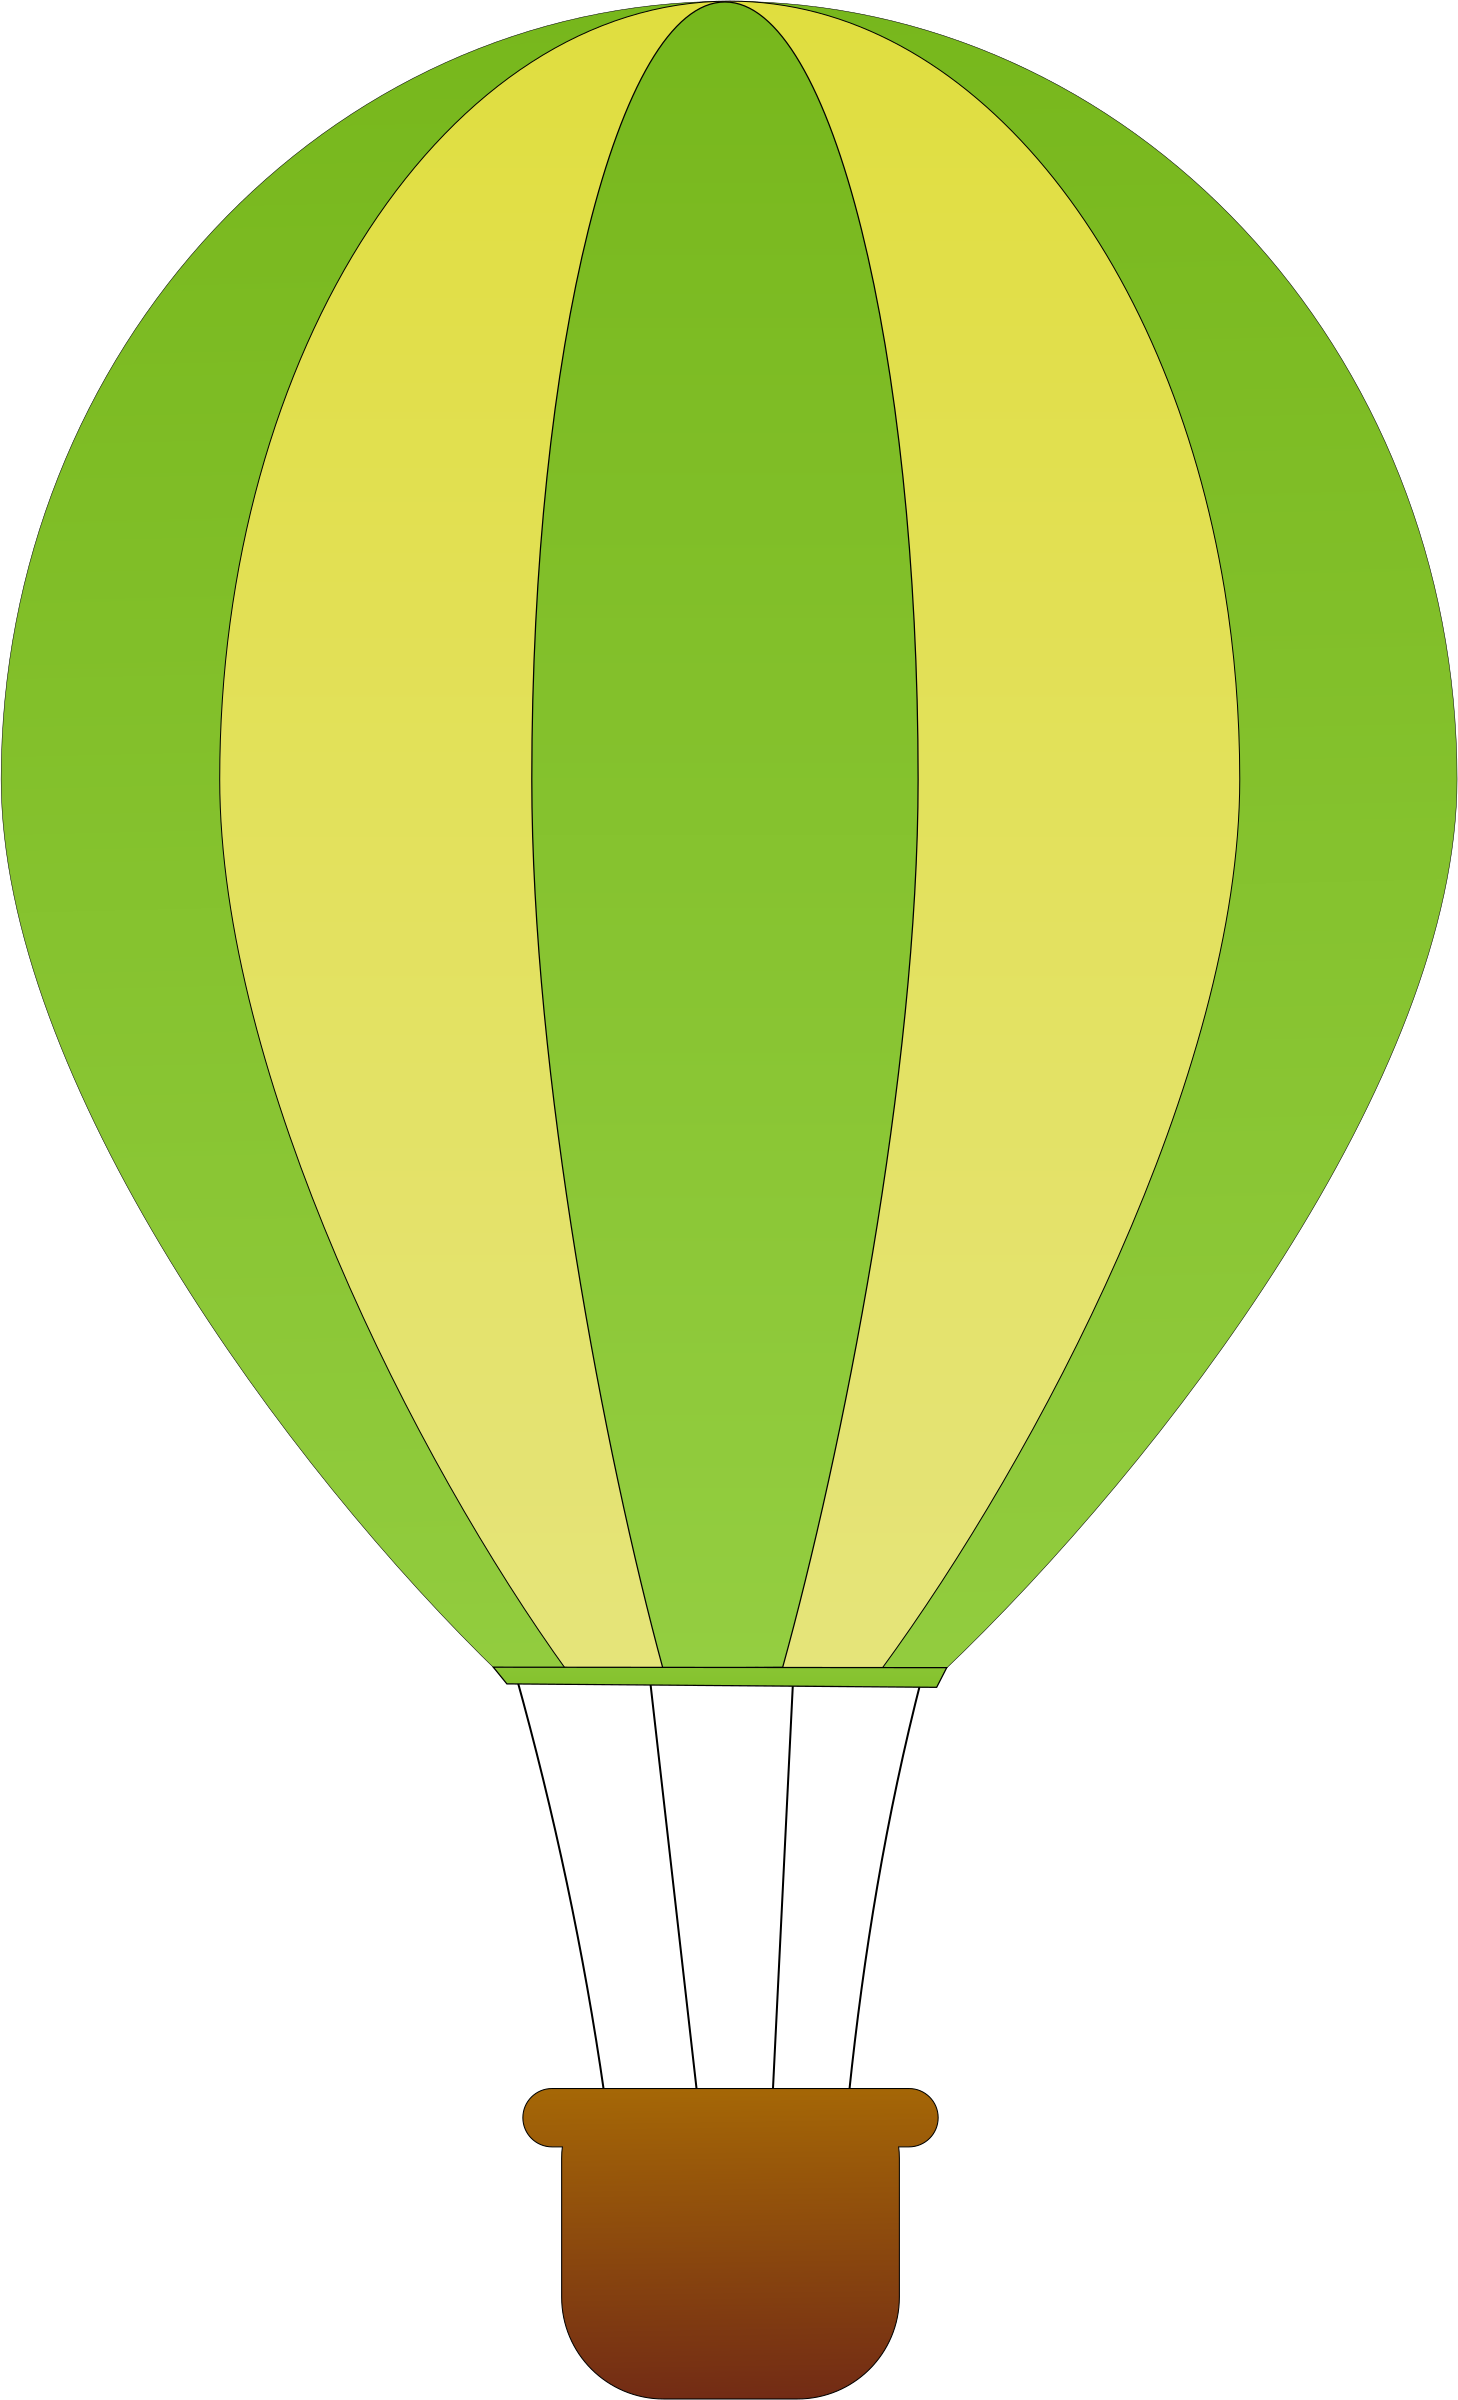 Vertical hot air balloons. Number 1 clipart striped